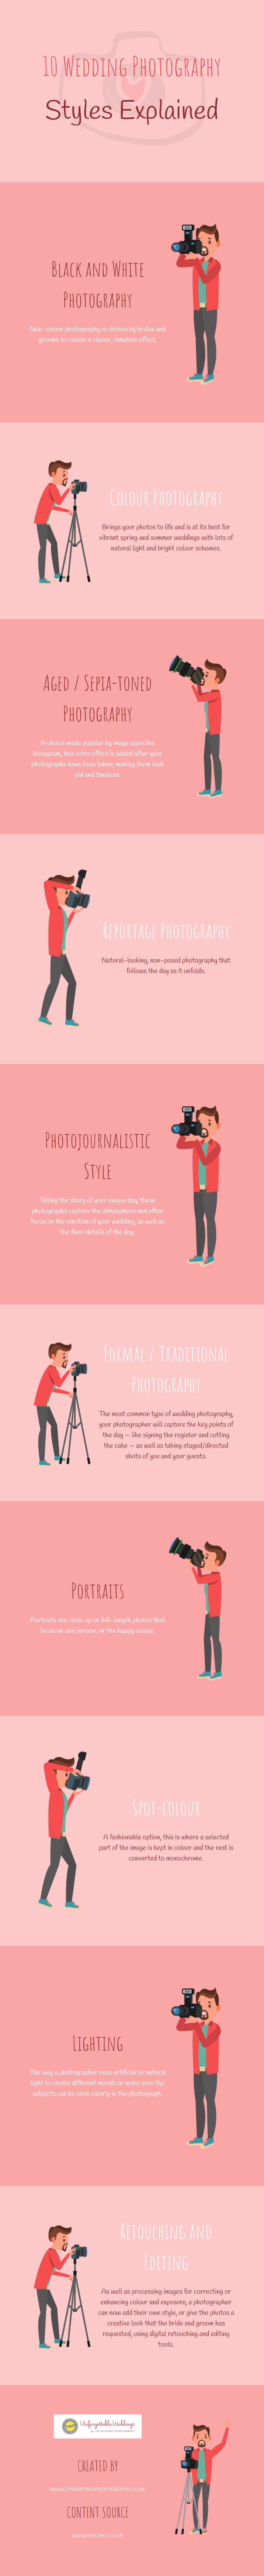 10 Wedding Photography Styles Explained.jpg